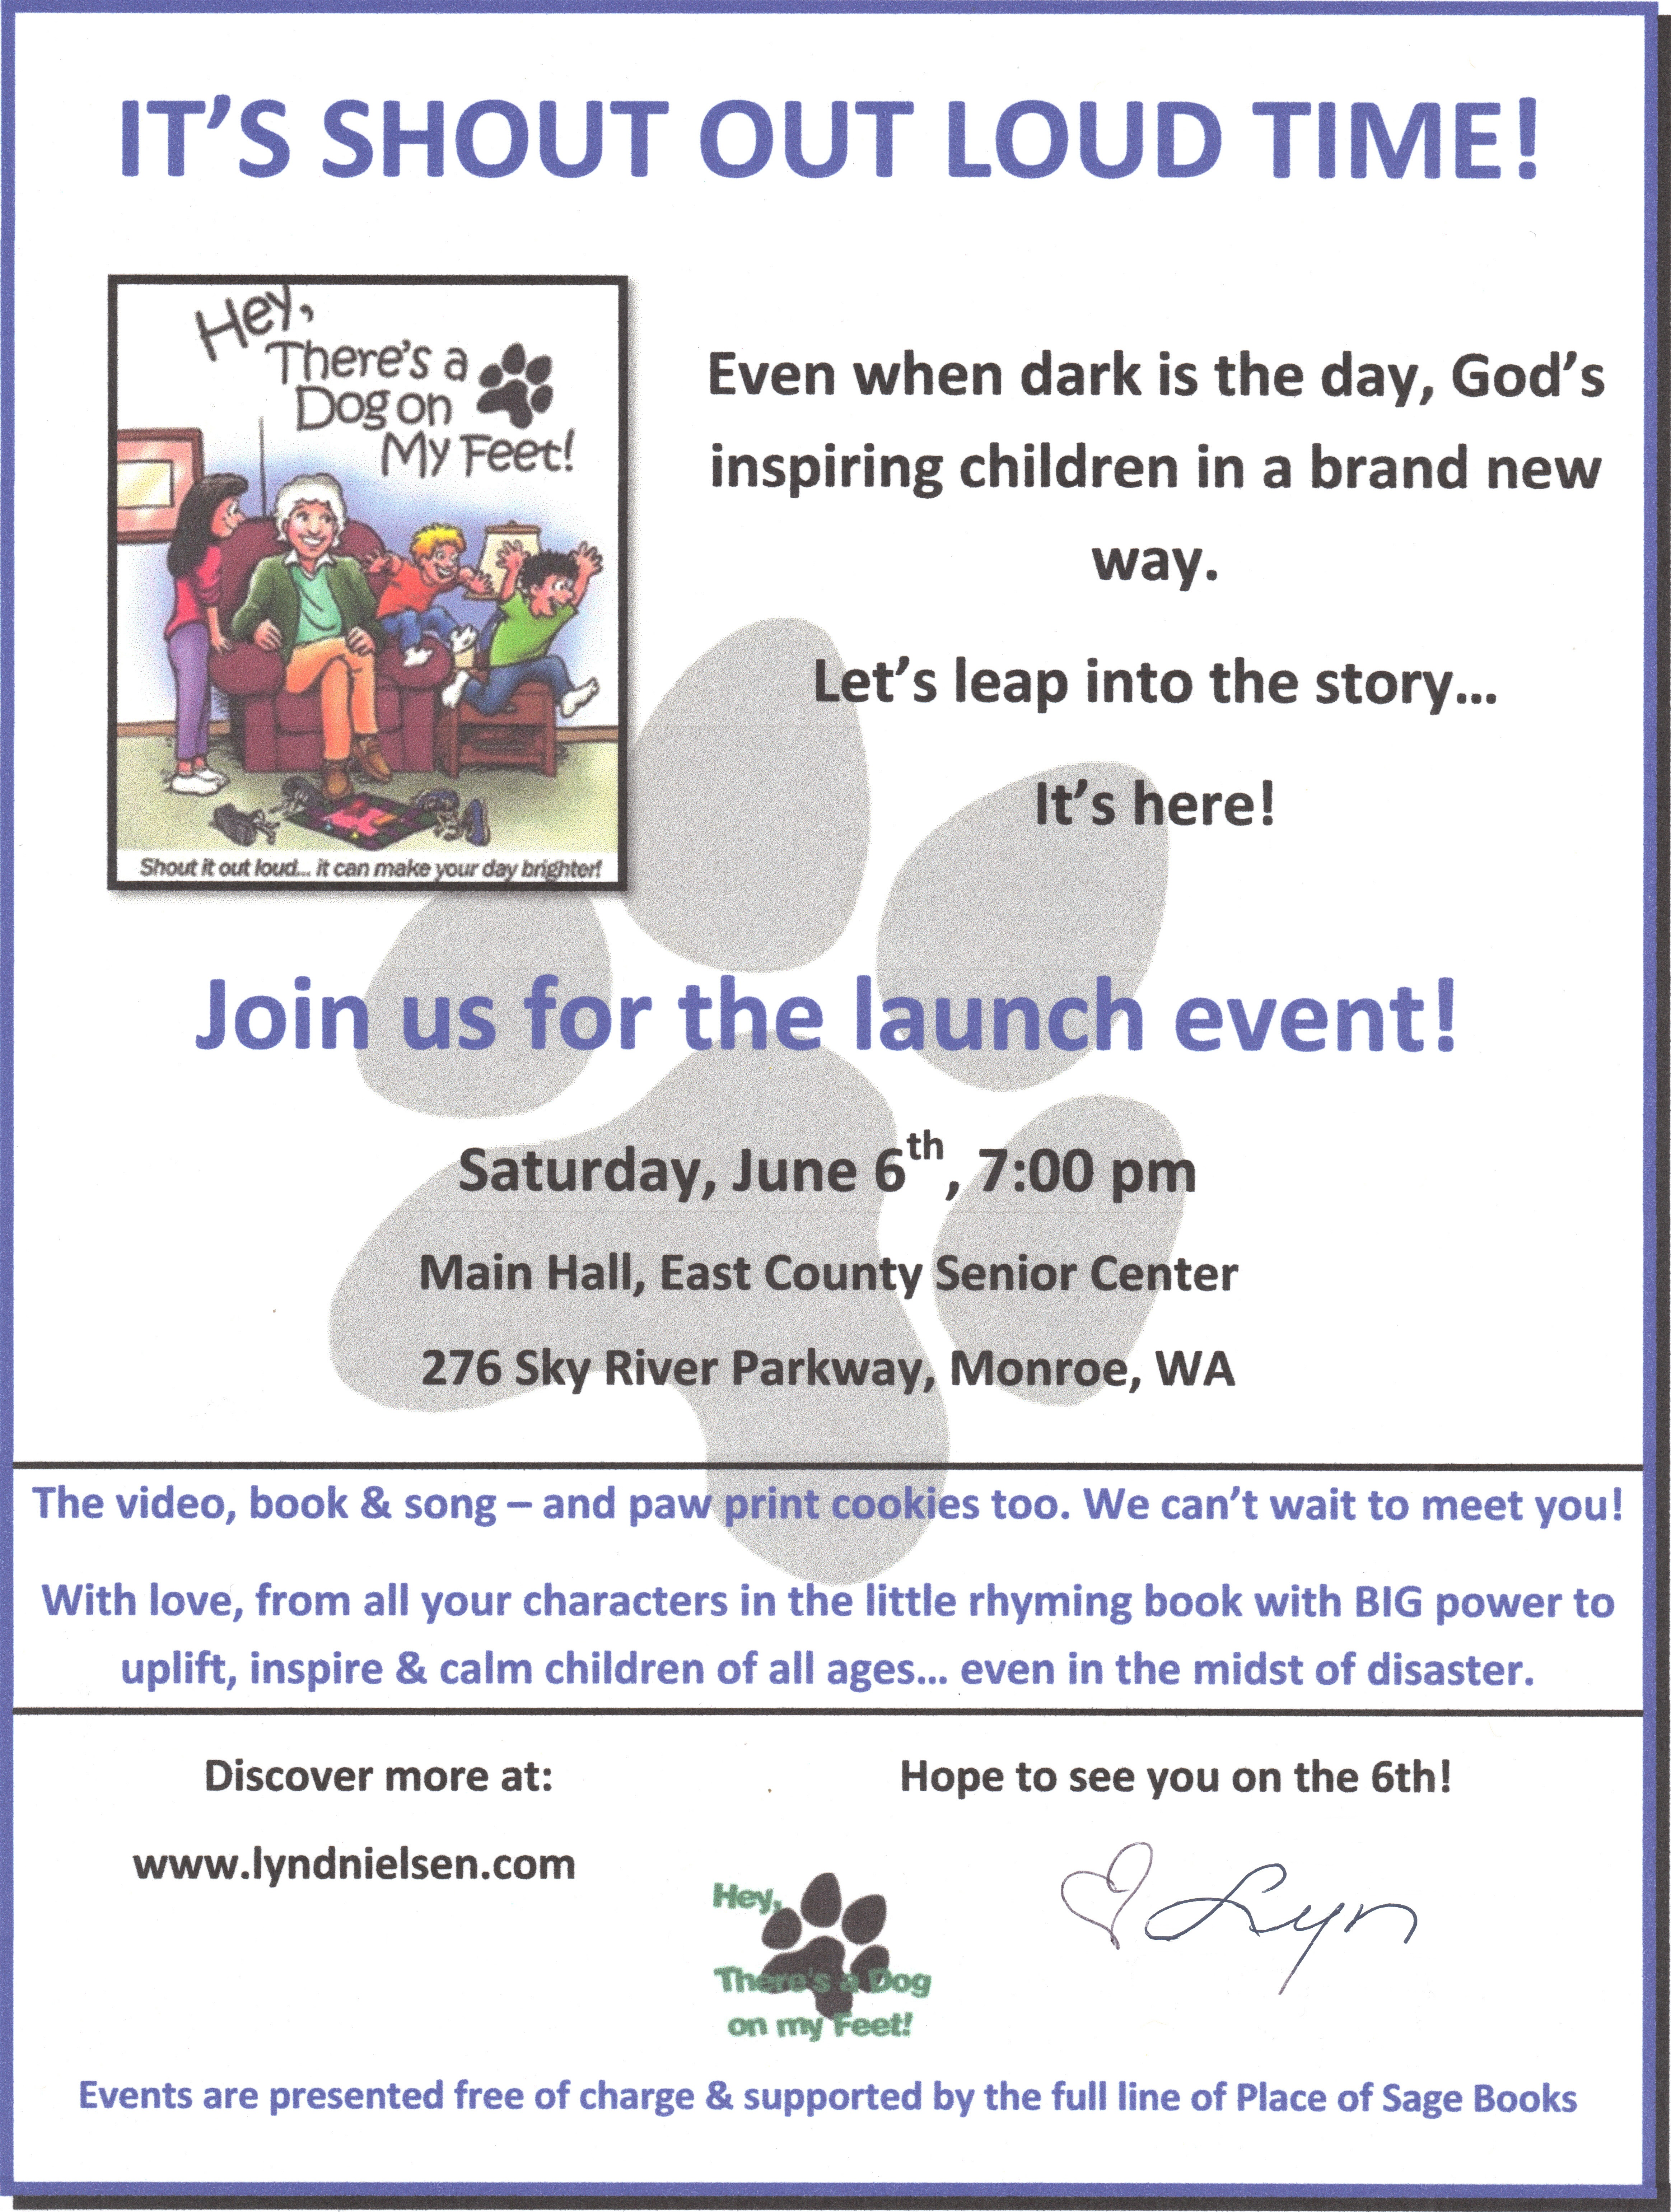 launch event flyer for Hey, There's a Dog on my Feet!